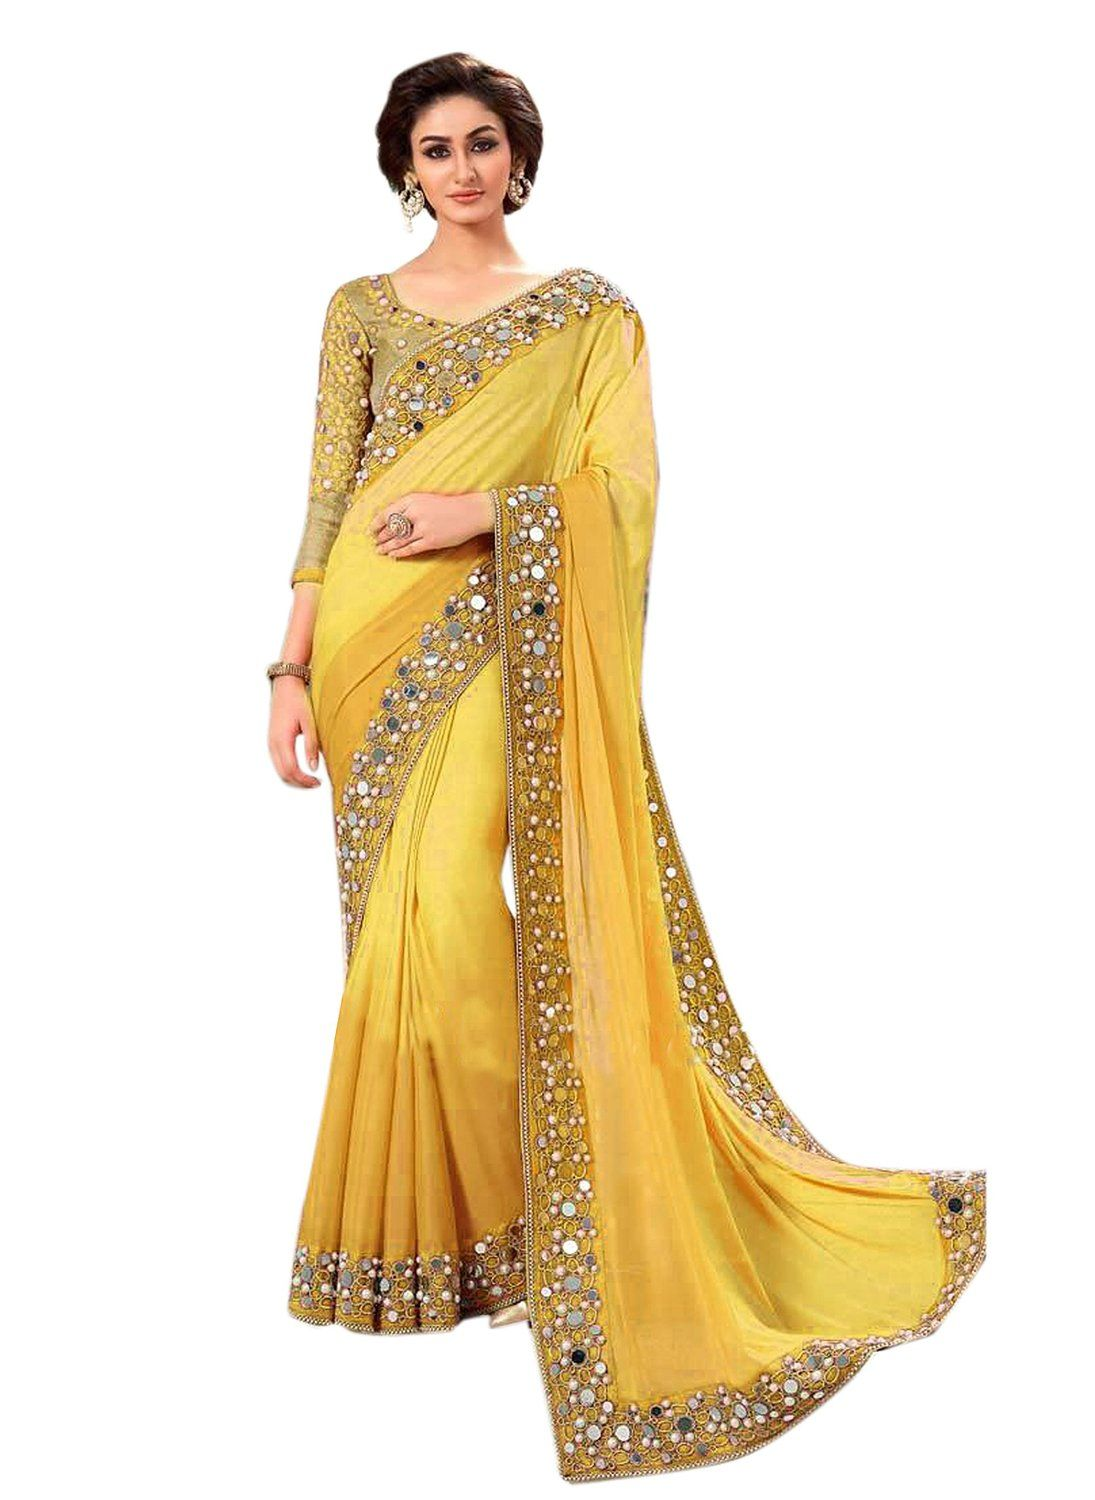 209dcd9ce6b28a Shop Party Wear Shaded Yellow Color Georgette Mirror Work Embroidered Saree  by Swastik Creation online. Largest collection of Latest Sarees online.